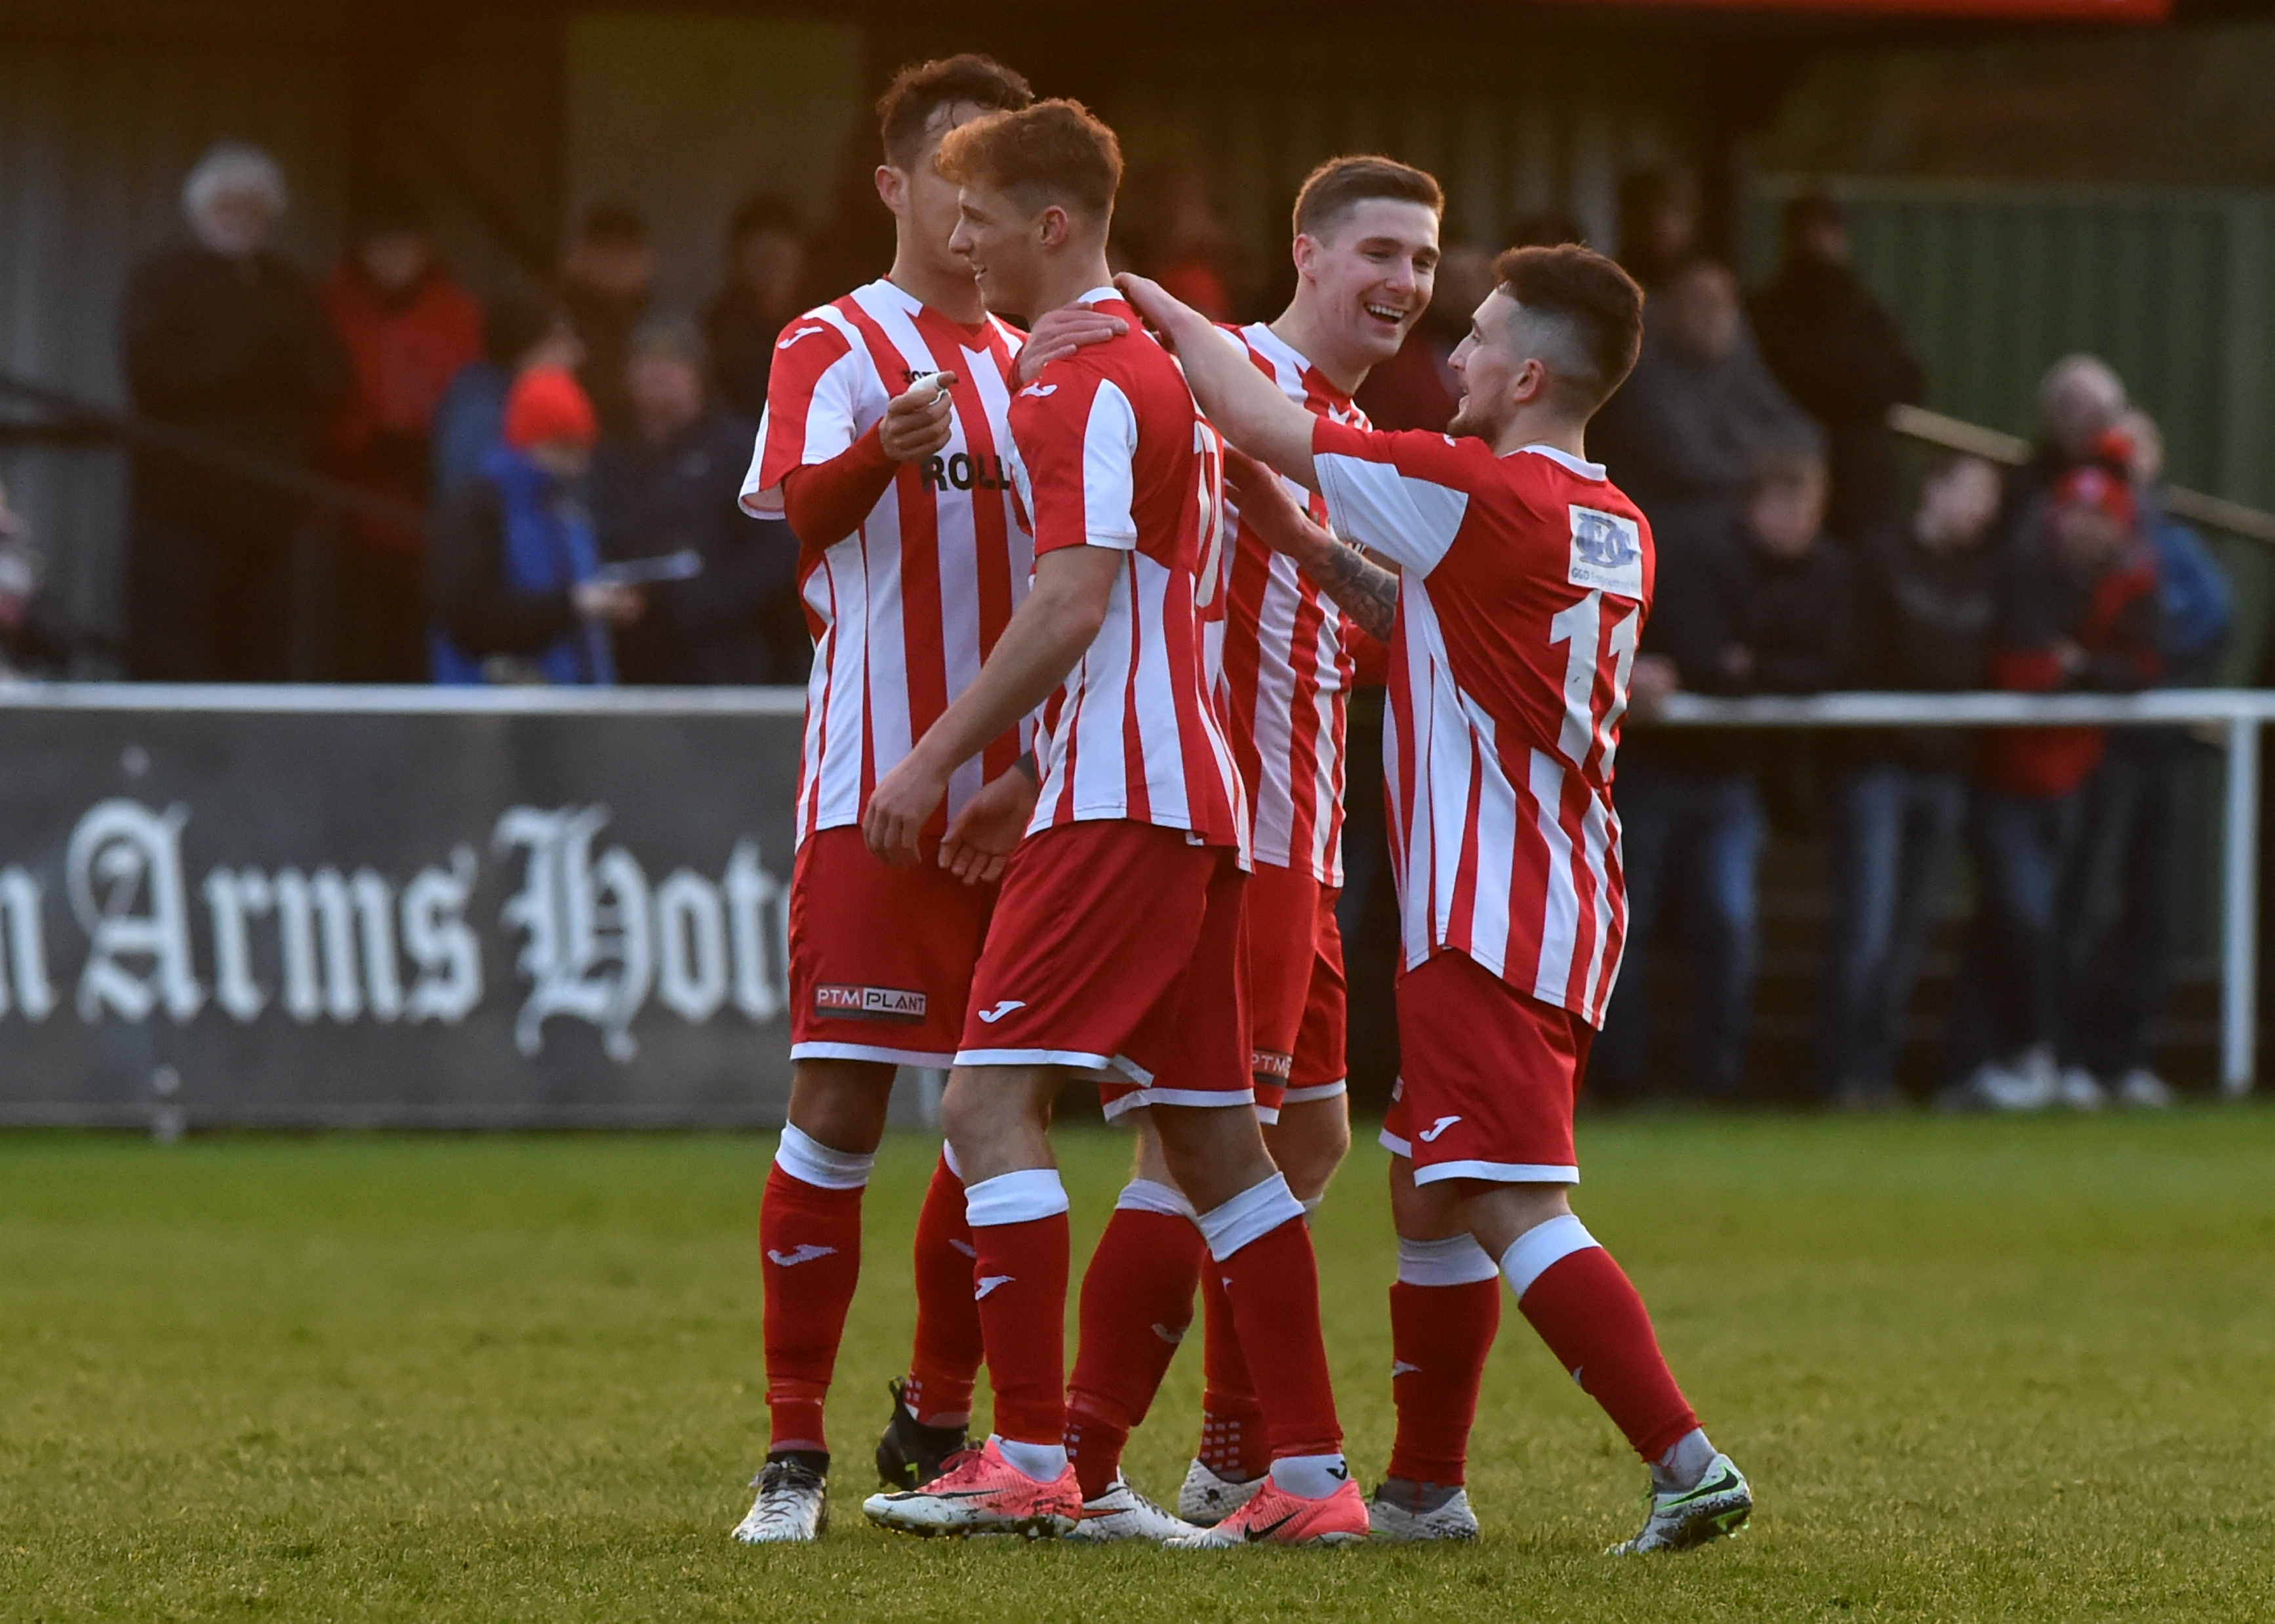 Aaron Norris has extended his deal with Formartine